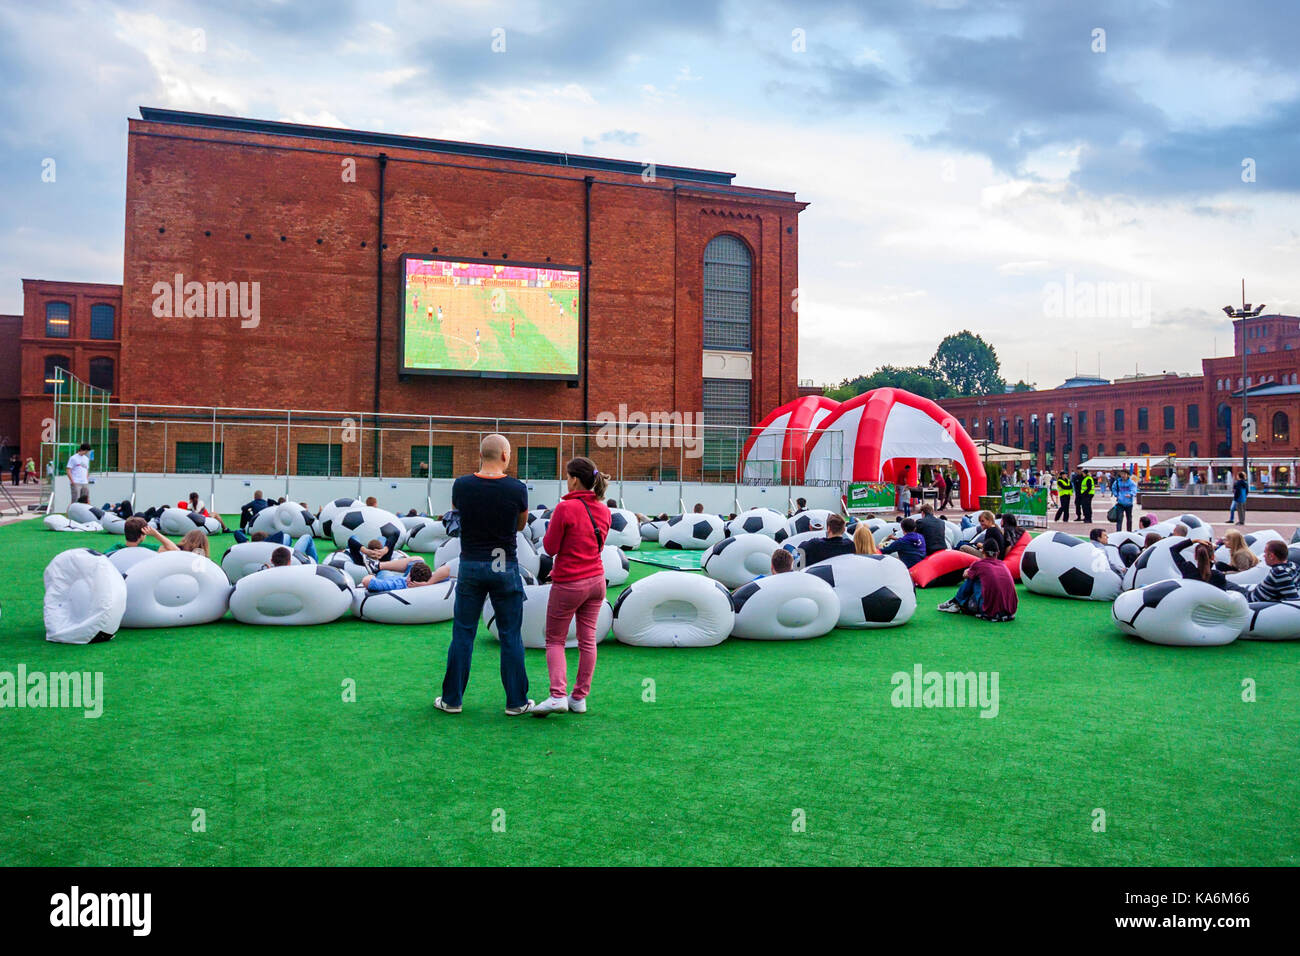 LODZ, POLAND - JUNE, 2012: Football fans - Stock Image